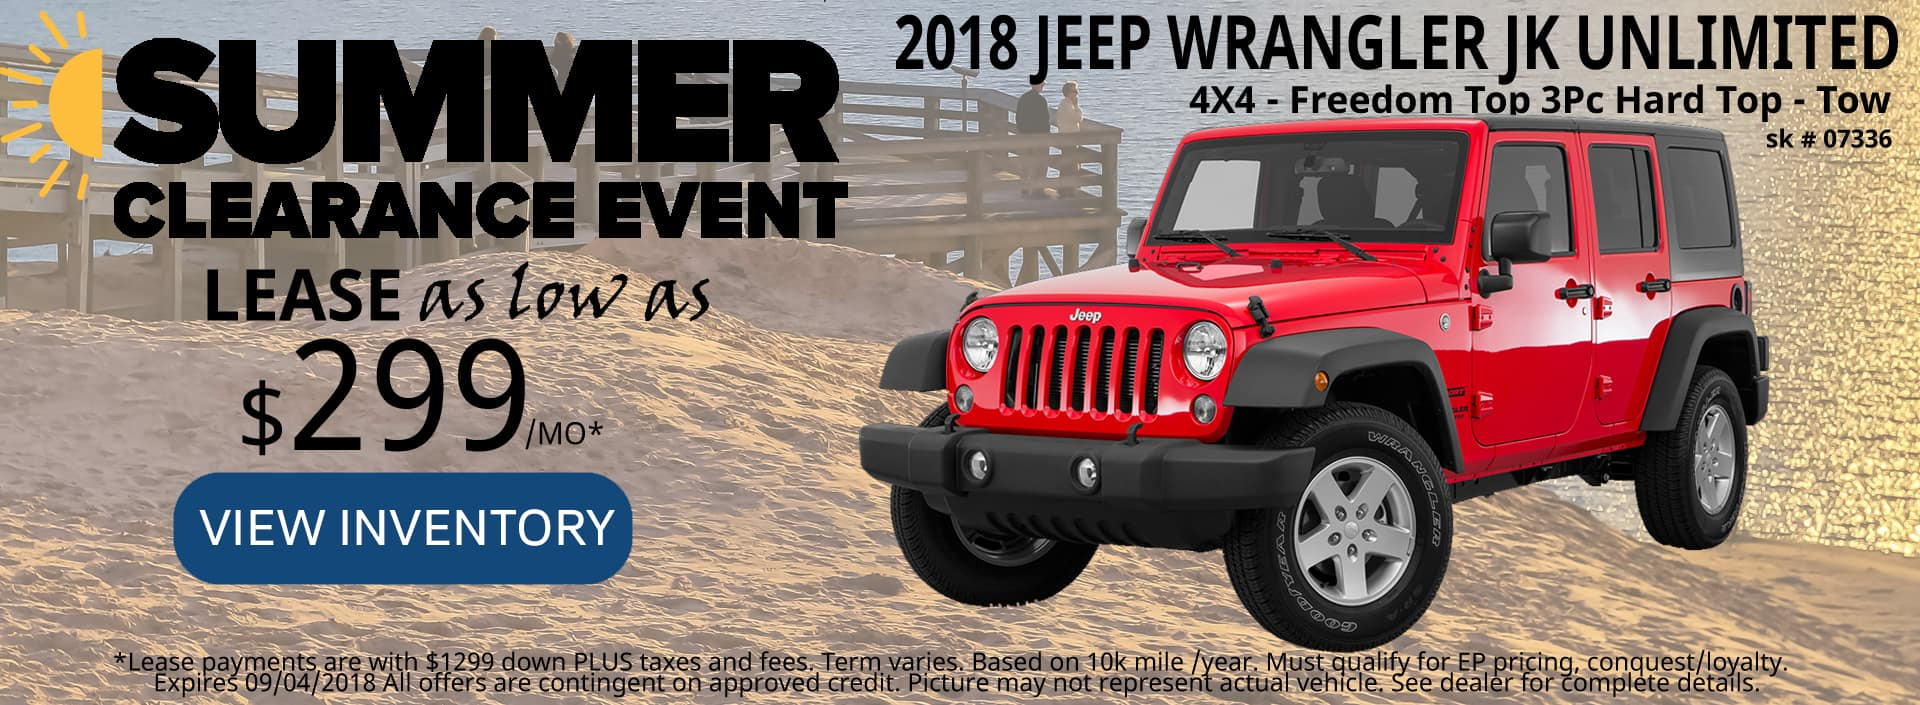 August 2018 Special Jeep Wrangler Unlimited